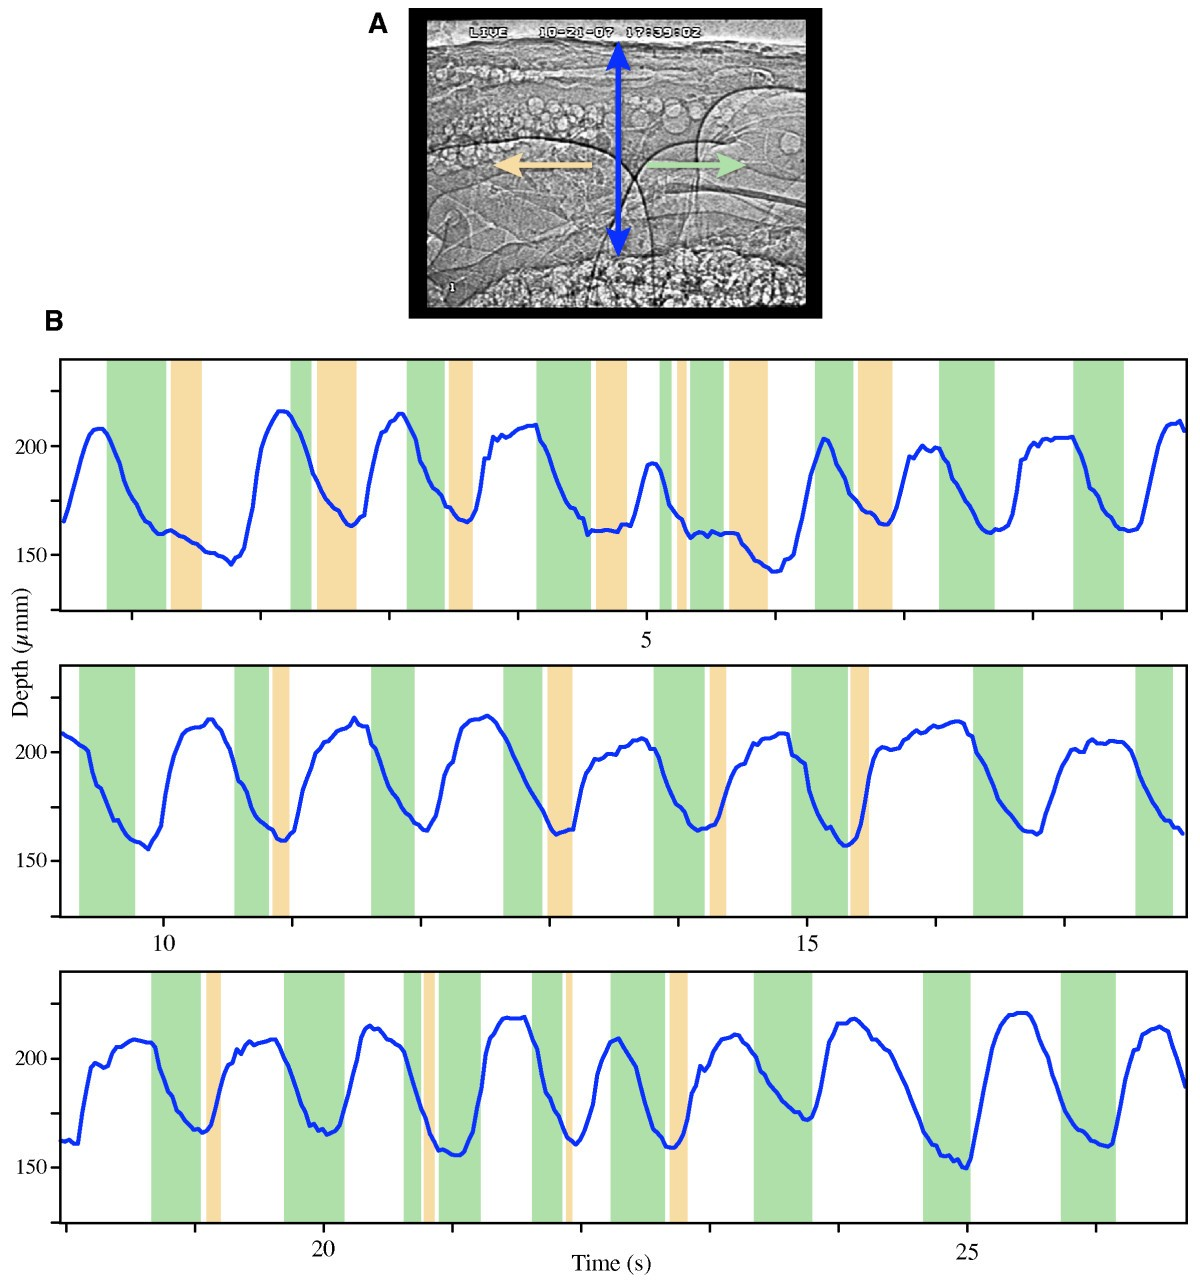 Direct Visualization Of Hemolymph Flow In The Heart A Grasshopper Measure External Voltage Electrical Engineering Stack Exchange Figure 2